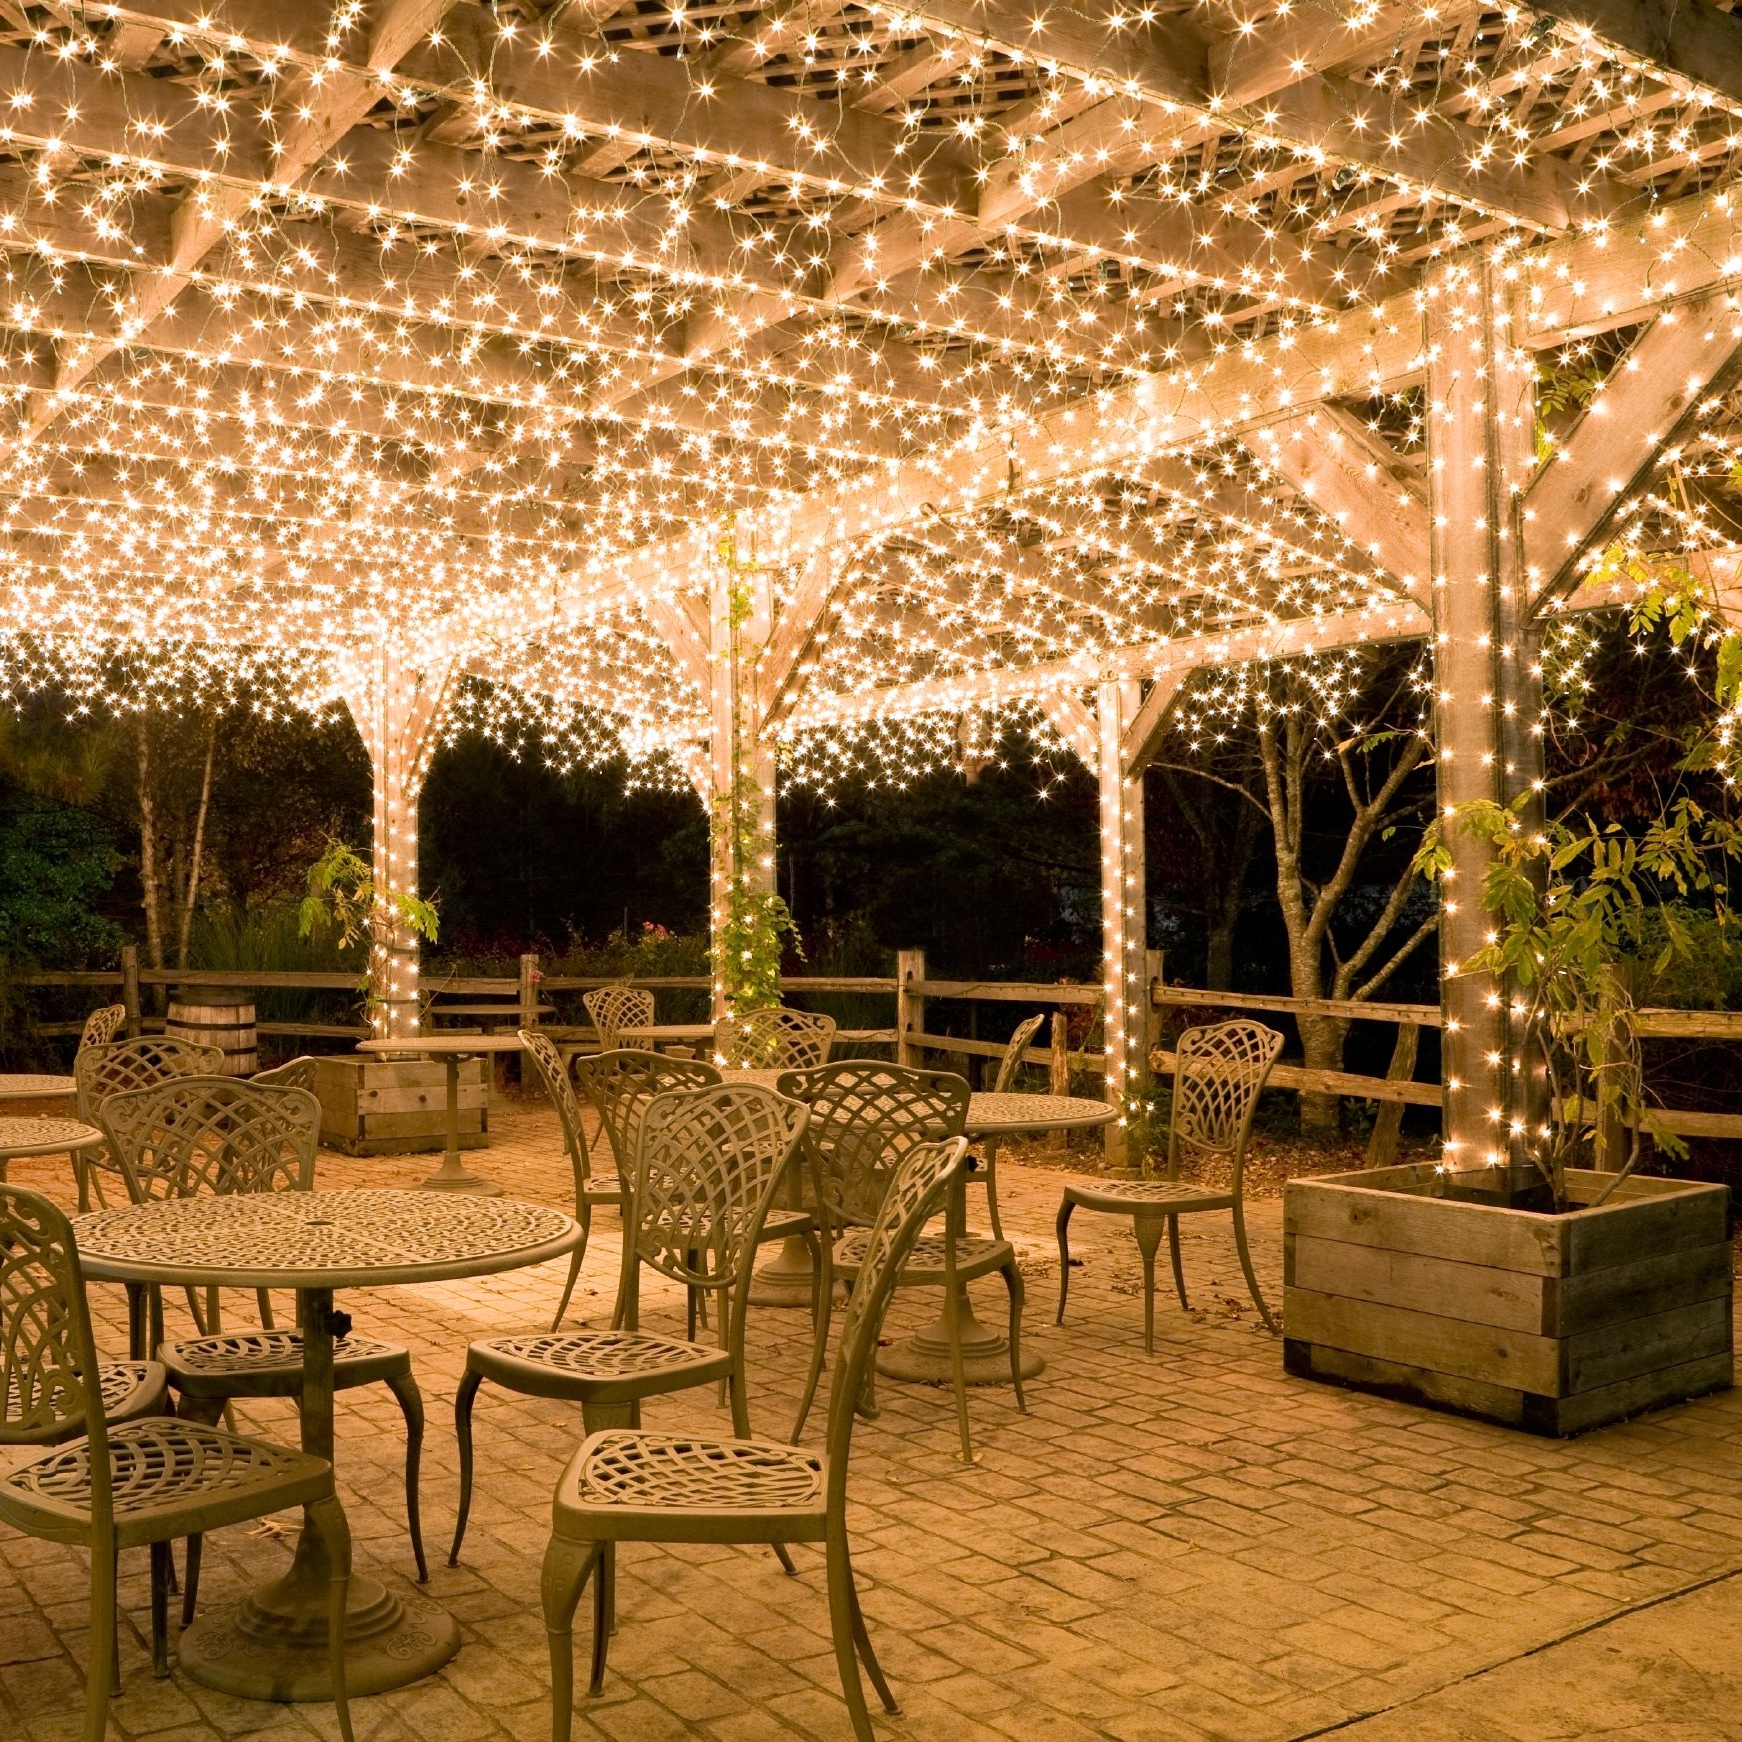 Hanging Outdoor Lights On Trees With Current Hang White Icicle Lights To Create Magical Outdoor Lighting (View 19 of 20)